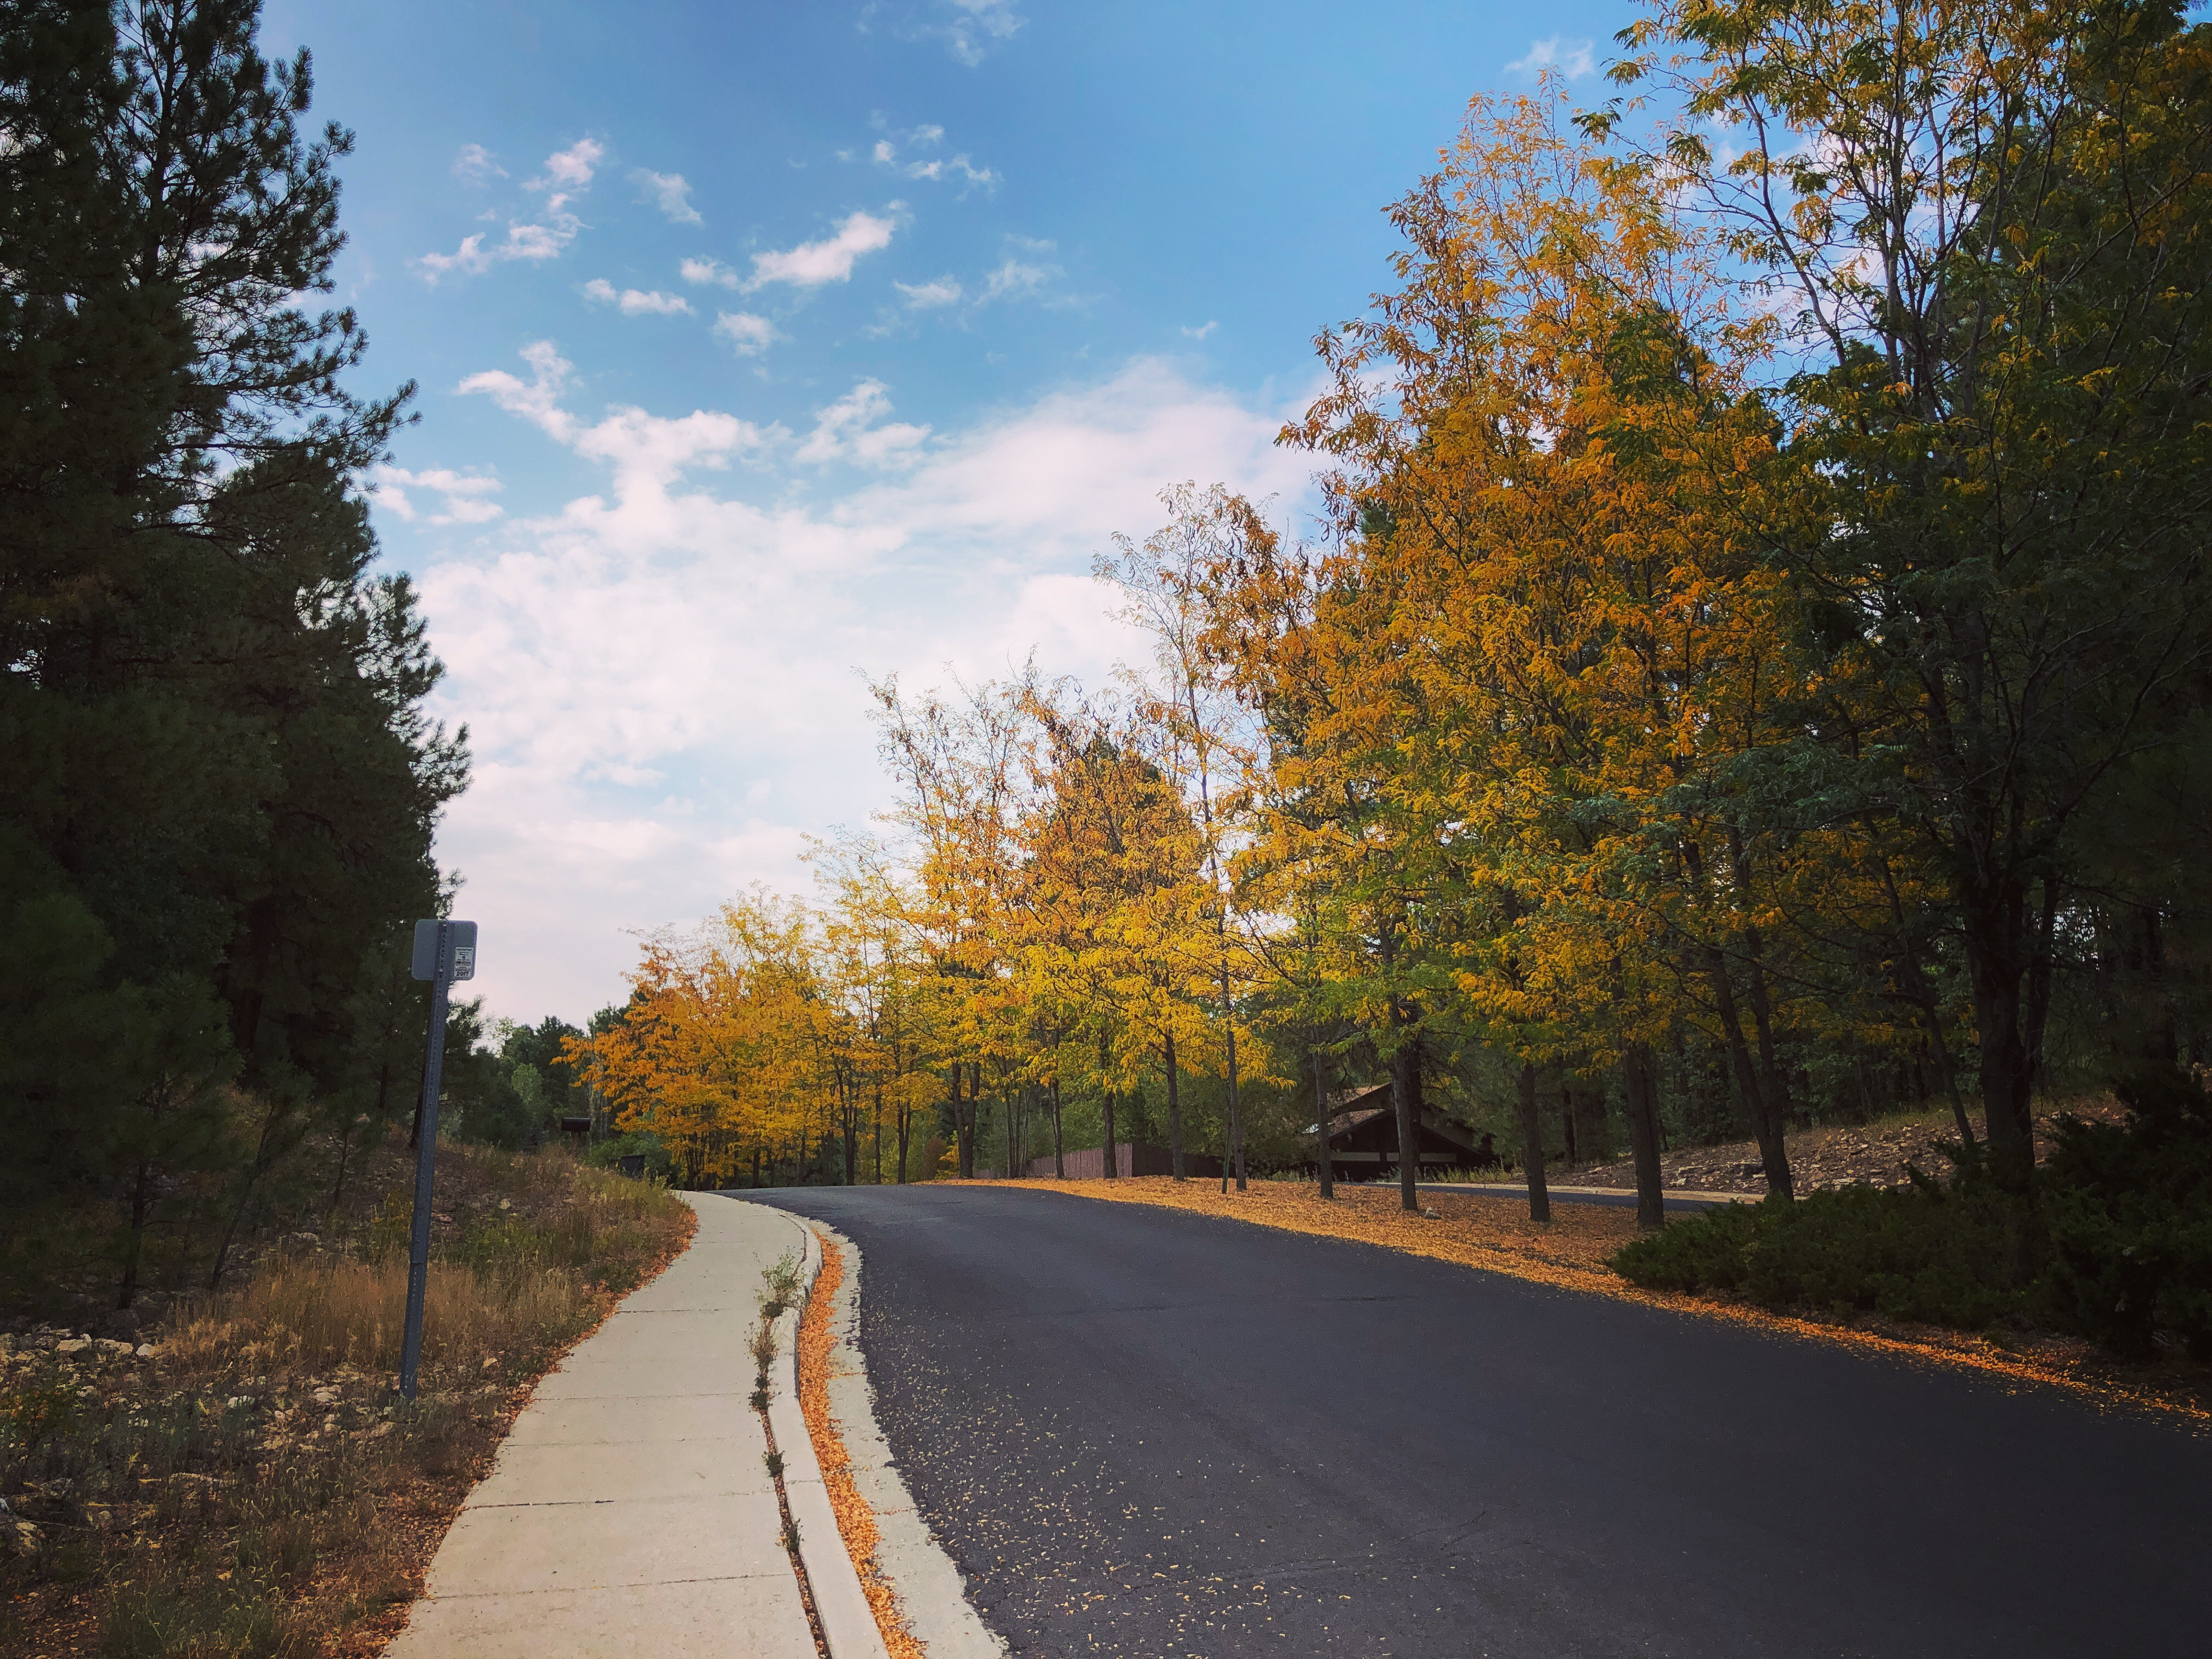 Photo of a row of trees with blue, cloudy sky. The leaves have turned brown and gold.